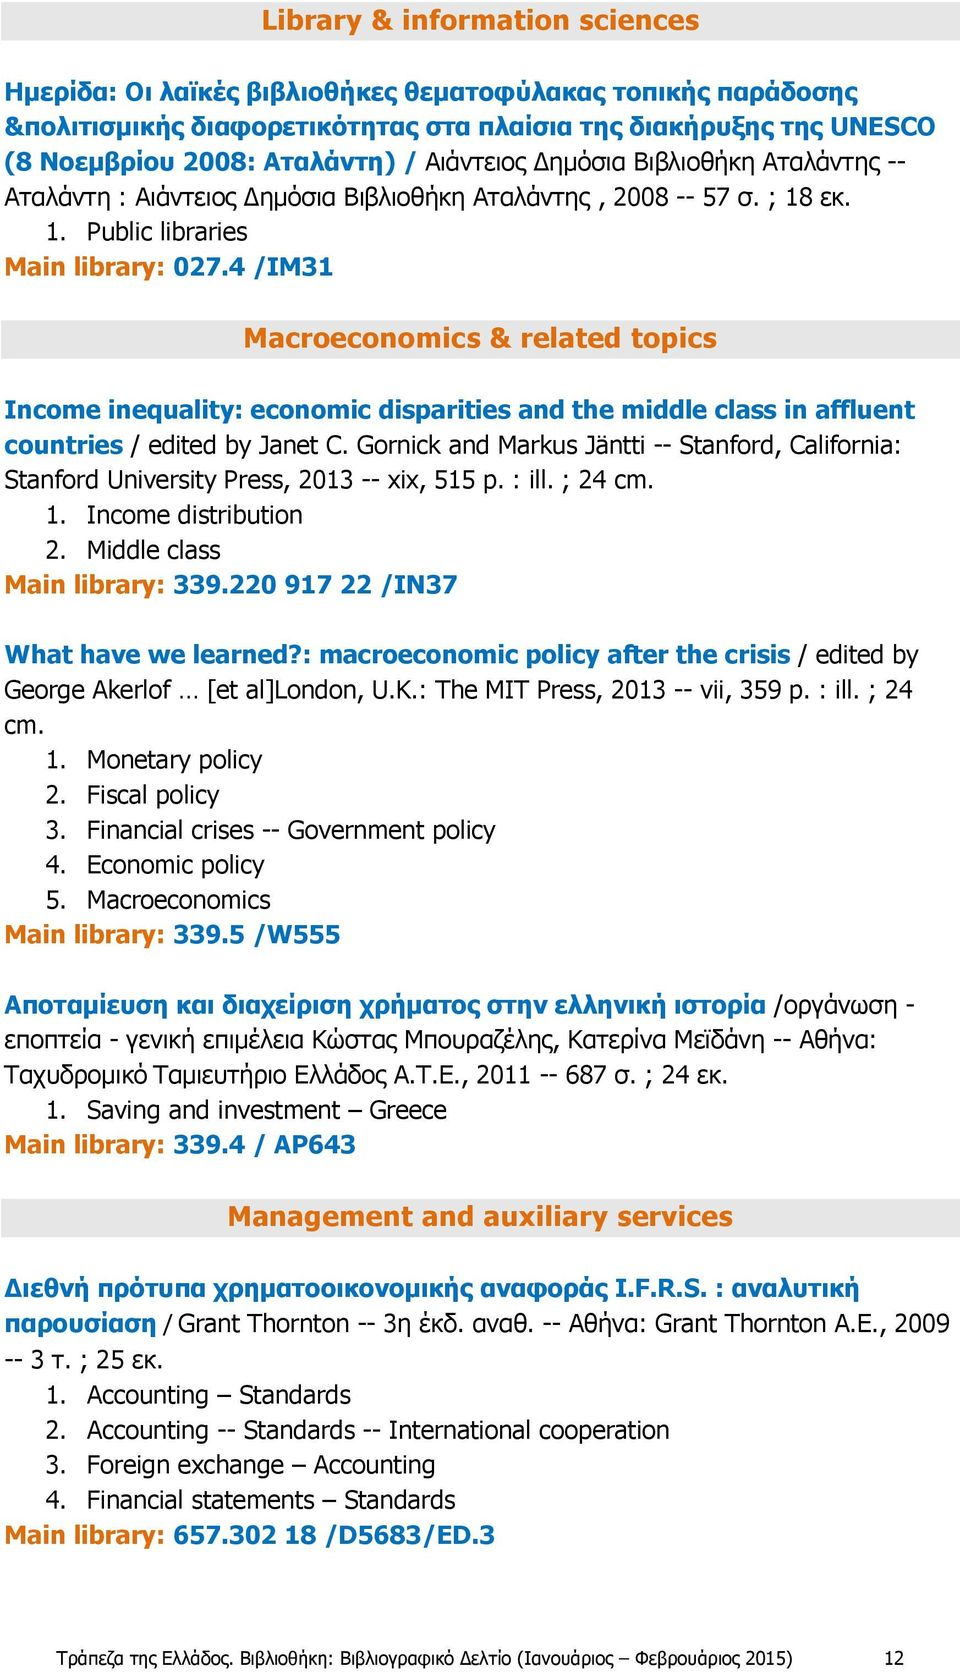 4 /IM31 Macroeconomics & related topics Income inequality: economic disparities and the middle class in affluent countries / edited by Janet C.